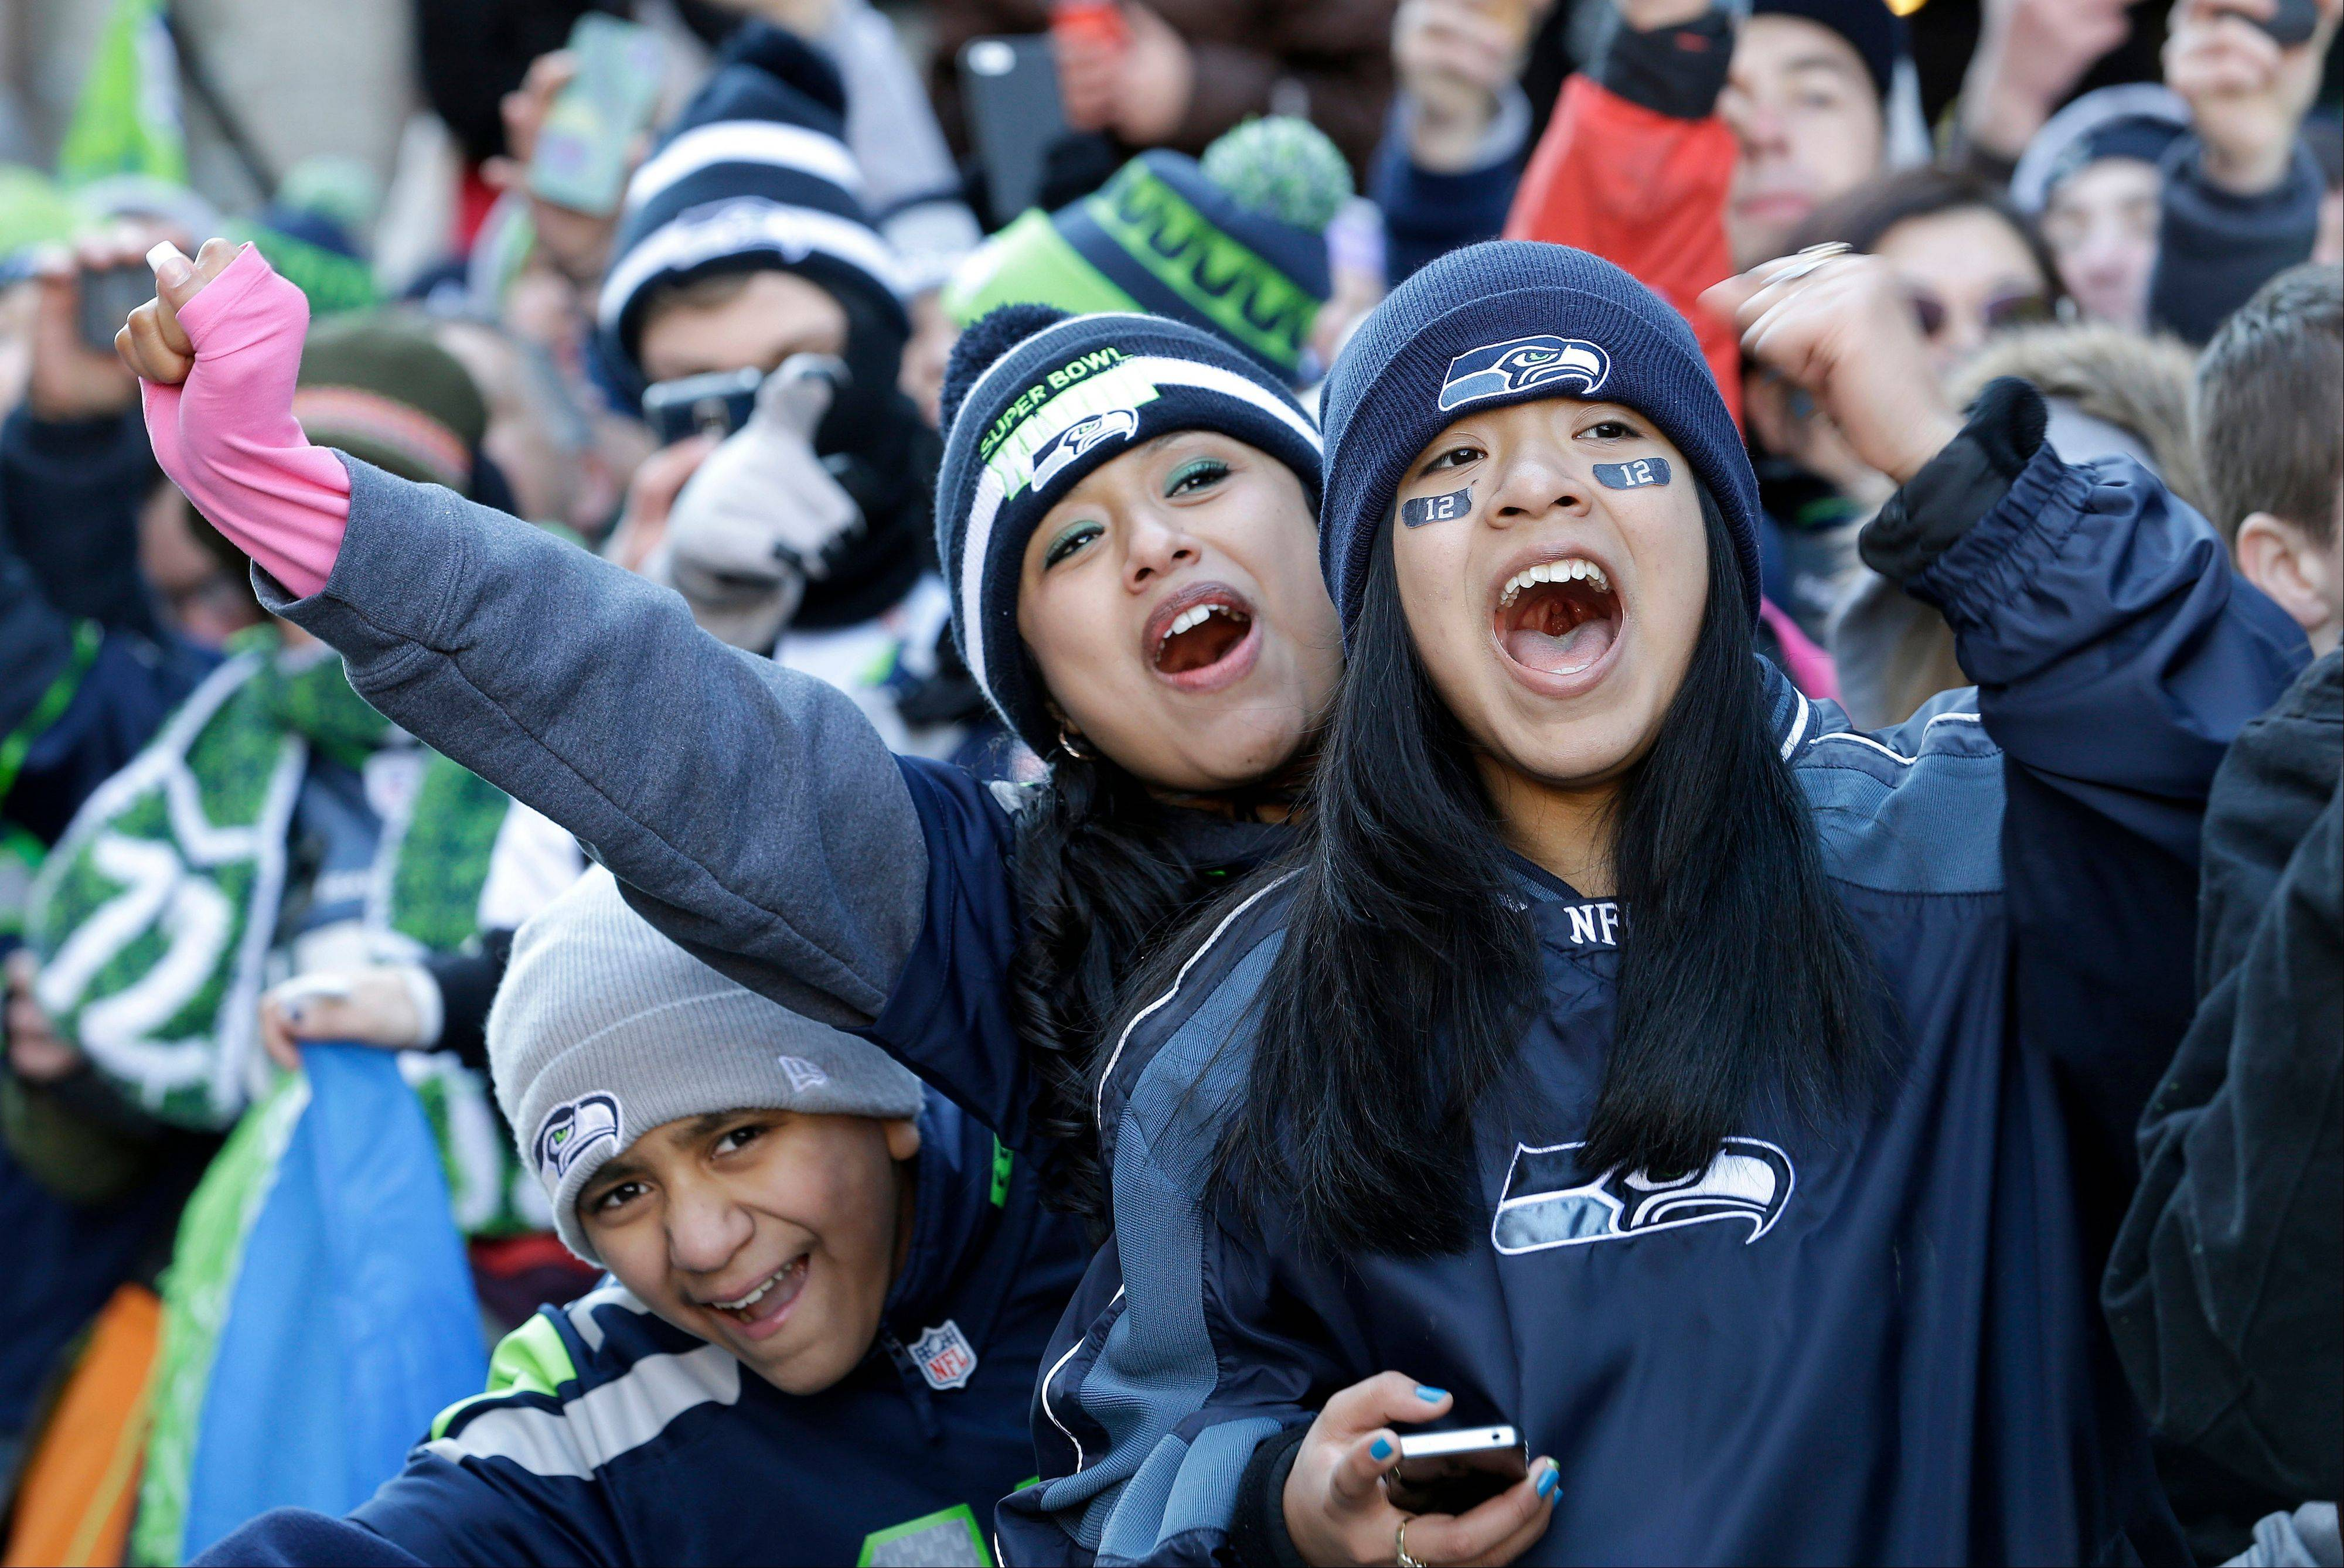 Seattle Seahawks fans cheer during the a parade for the NFL football Super Bowl champions, Wednesday, Feb. 5, 2014, in Seattle. The Seahawks defeated the Denver Broncos 43-8 on Sunday.